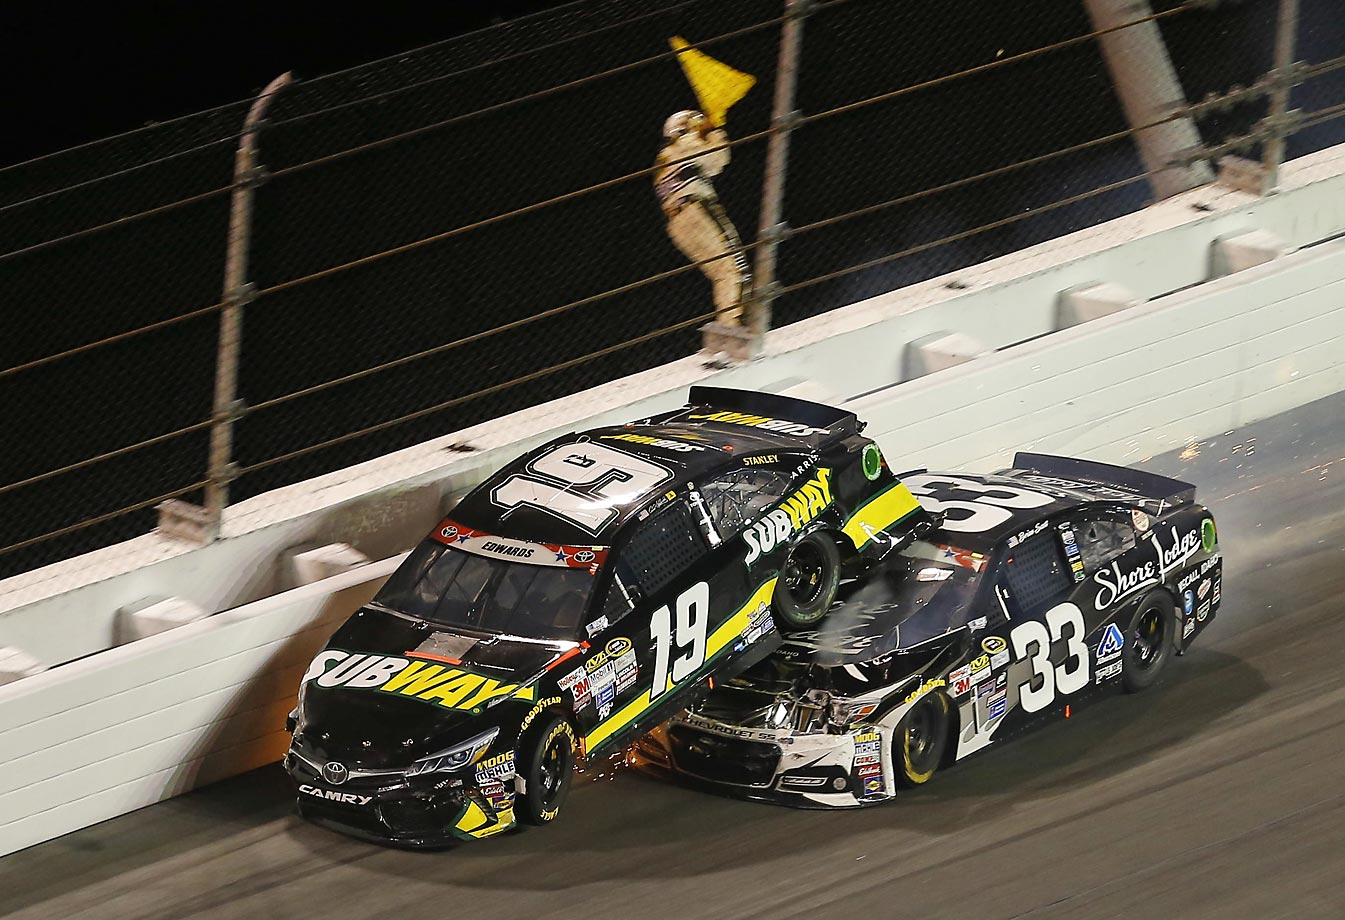 Brian Scott gives Carl Edwards a piggy back during Sunday's race at Daytona.